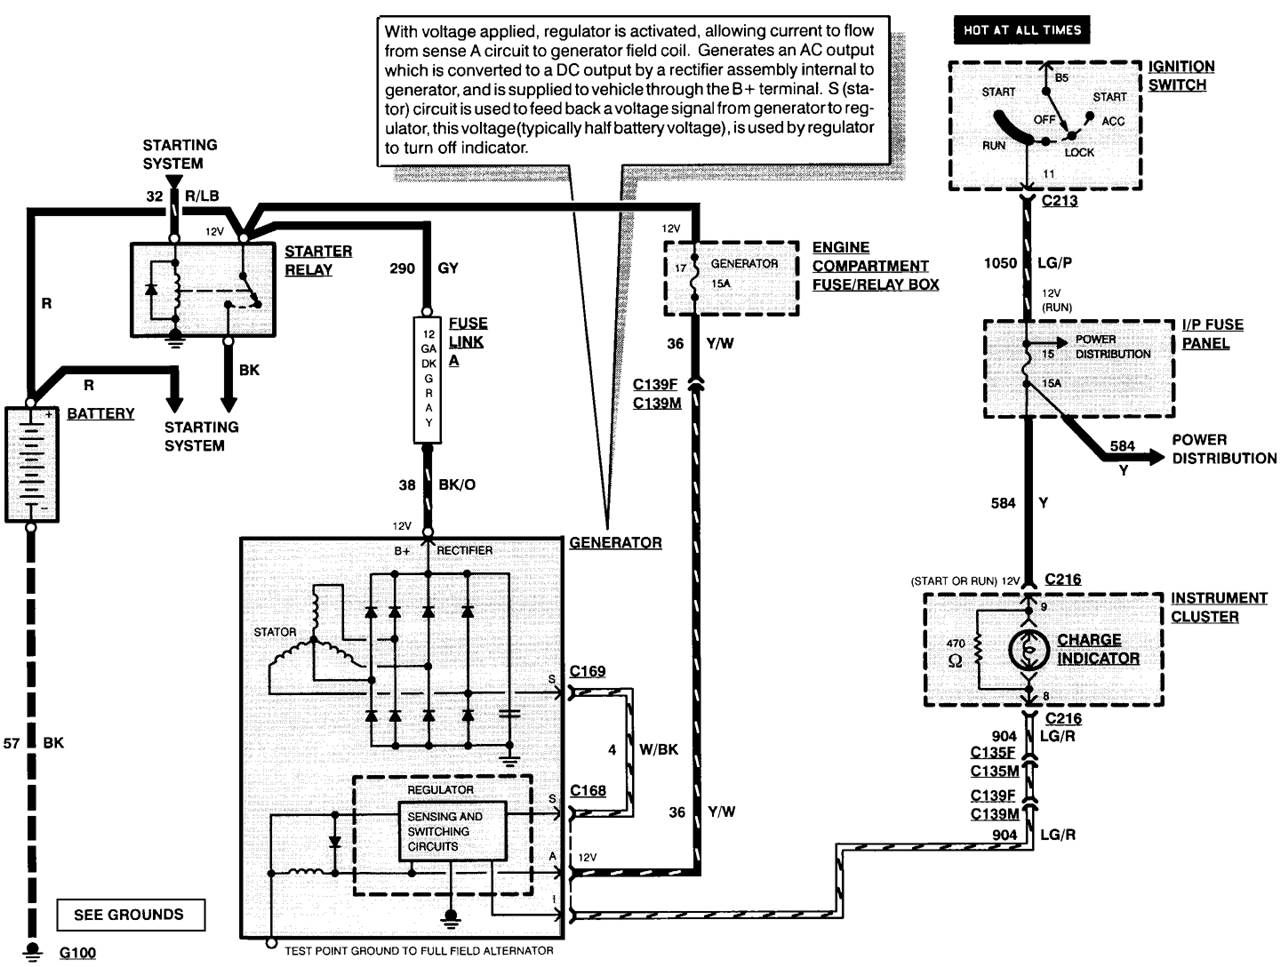 Ford alternator wiring diagram internal regulator ford alternator wiring diagrams carsut understand cars and ford alternator wiring schematic at bayanpartner.co